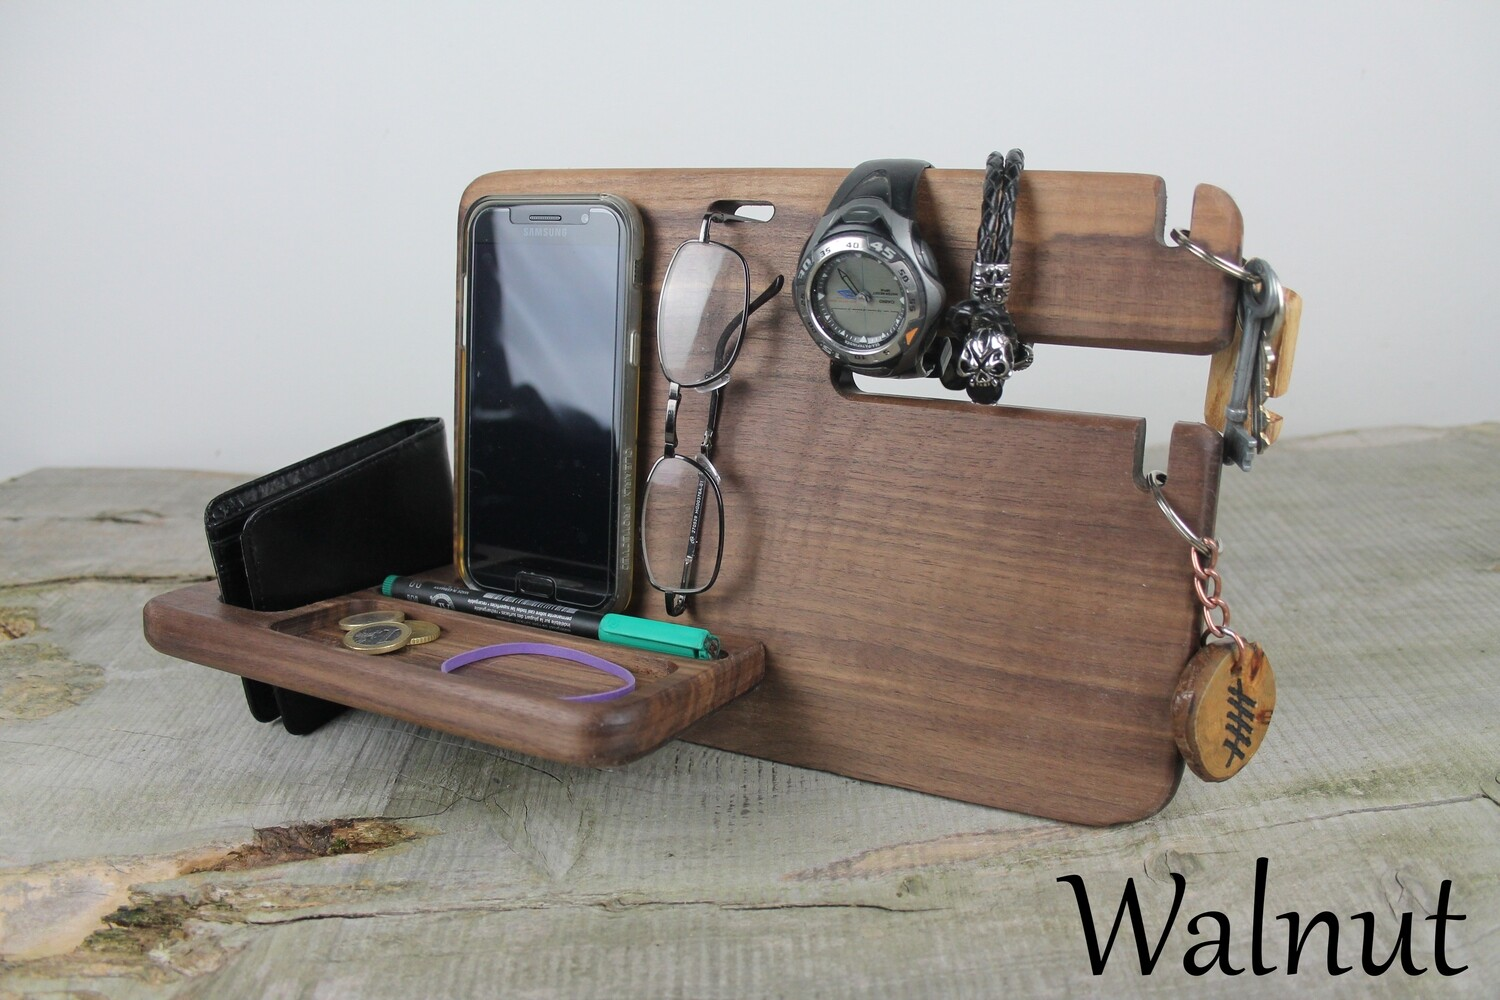 Walnut Desk Organizer, Phone Stand, and Charging Station